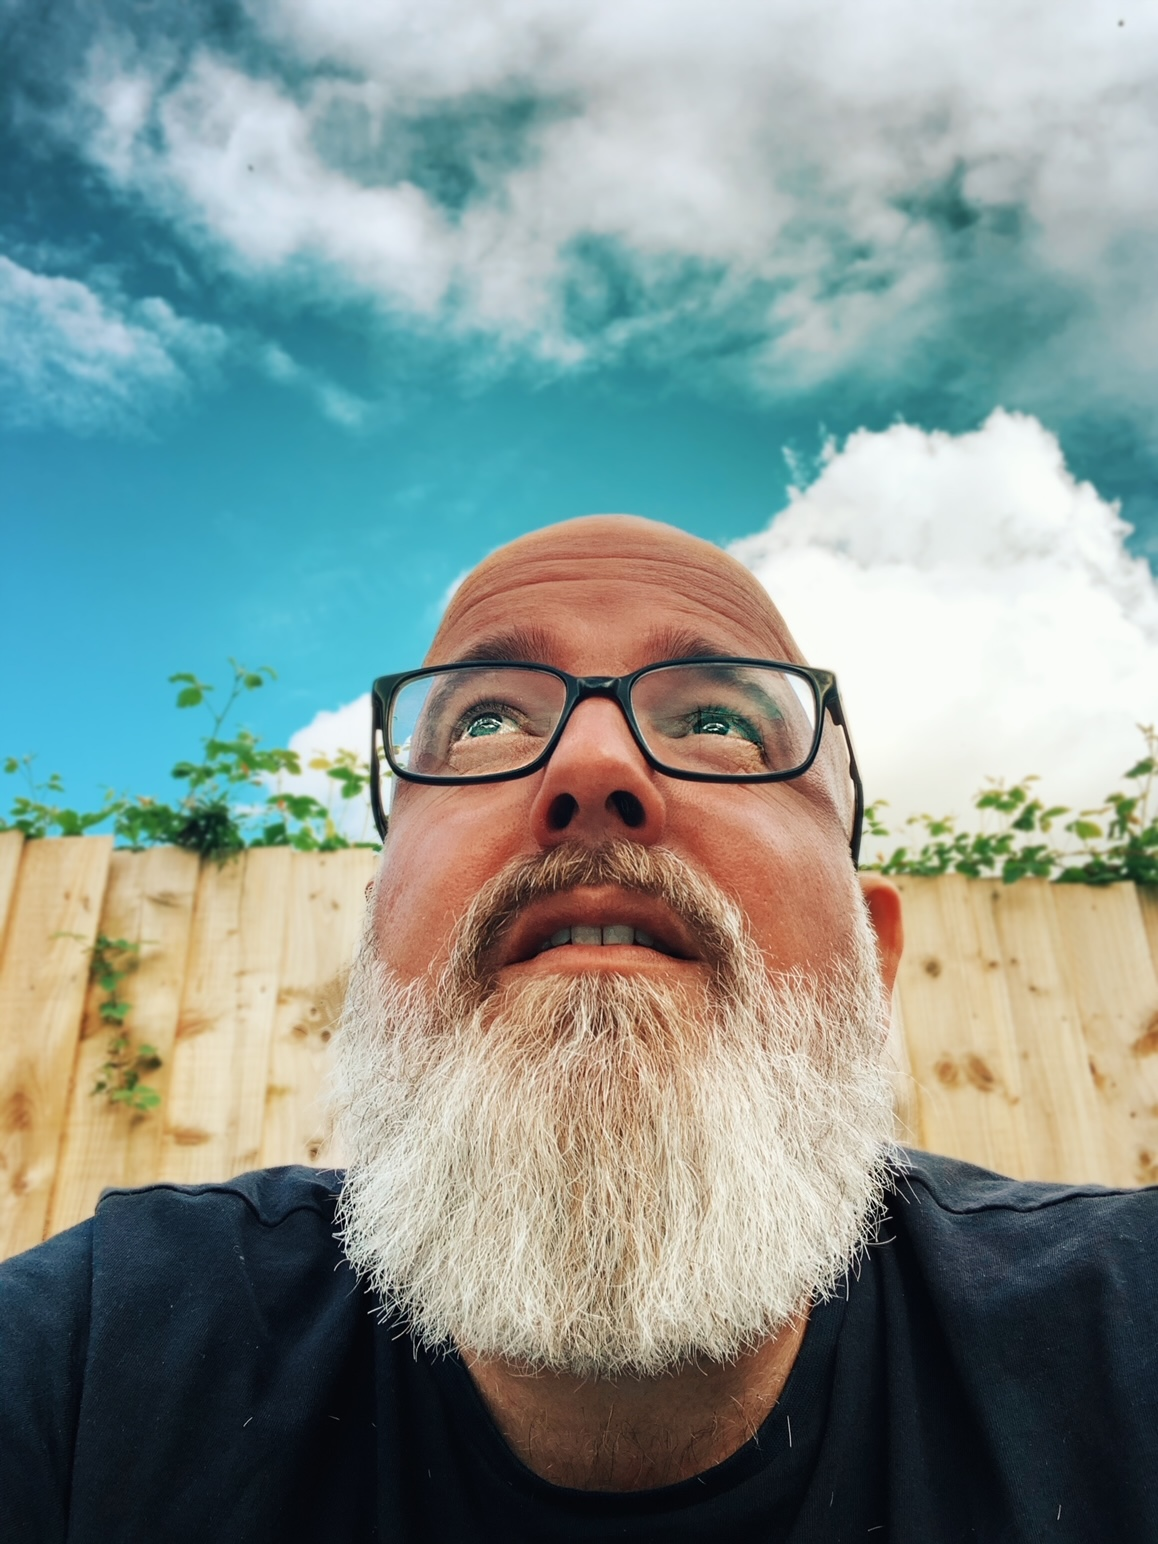 A rather arty yet fetching photo of your host, Guy Carberry, looking wistfully toward a sky of puffy clouds and opportunity.